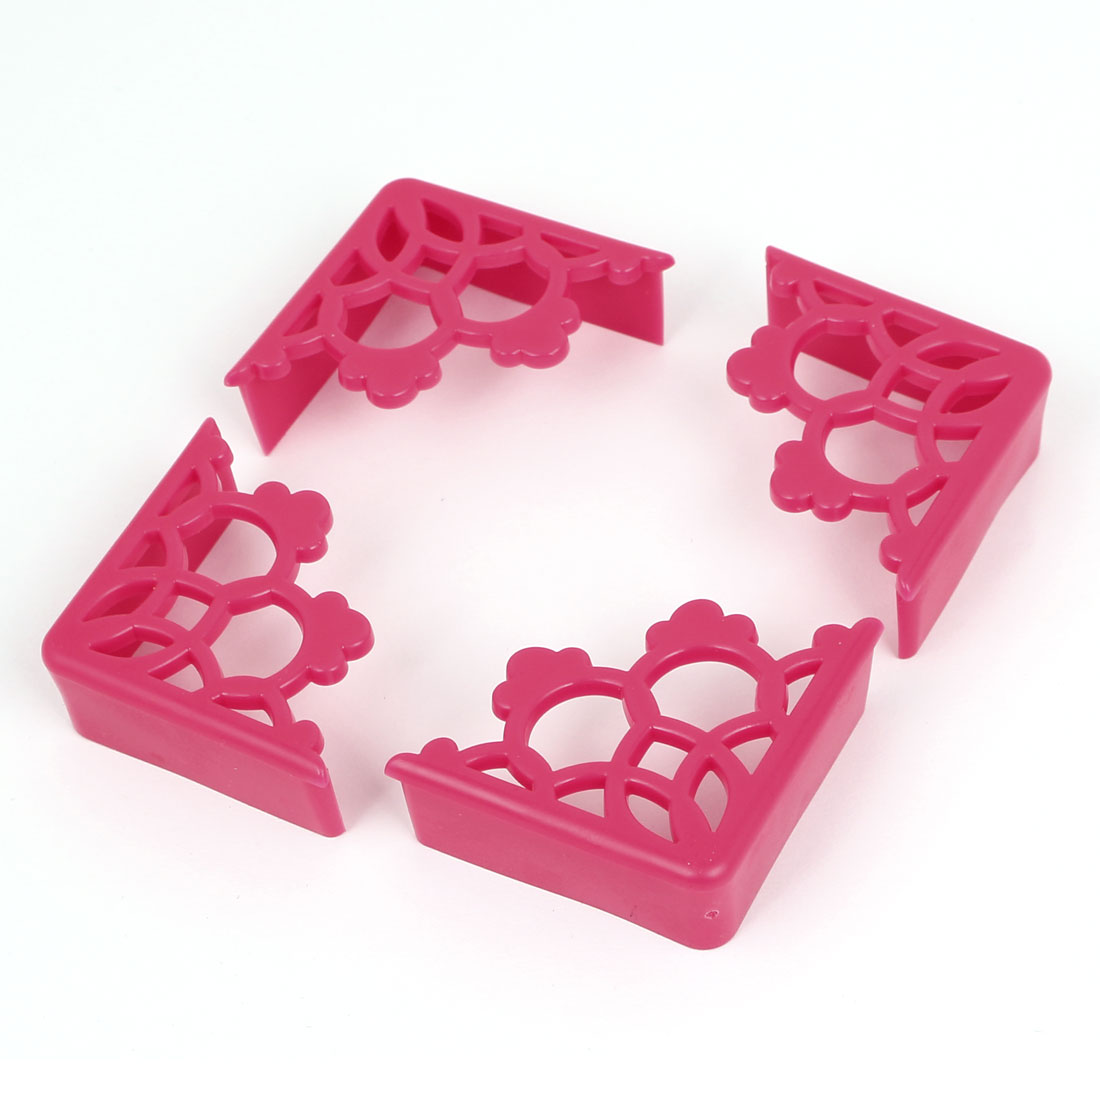 Hollow Flower Design Table Desk Corner Edge Cushion Guard Protector Fuchsia 4Pcs